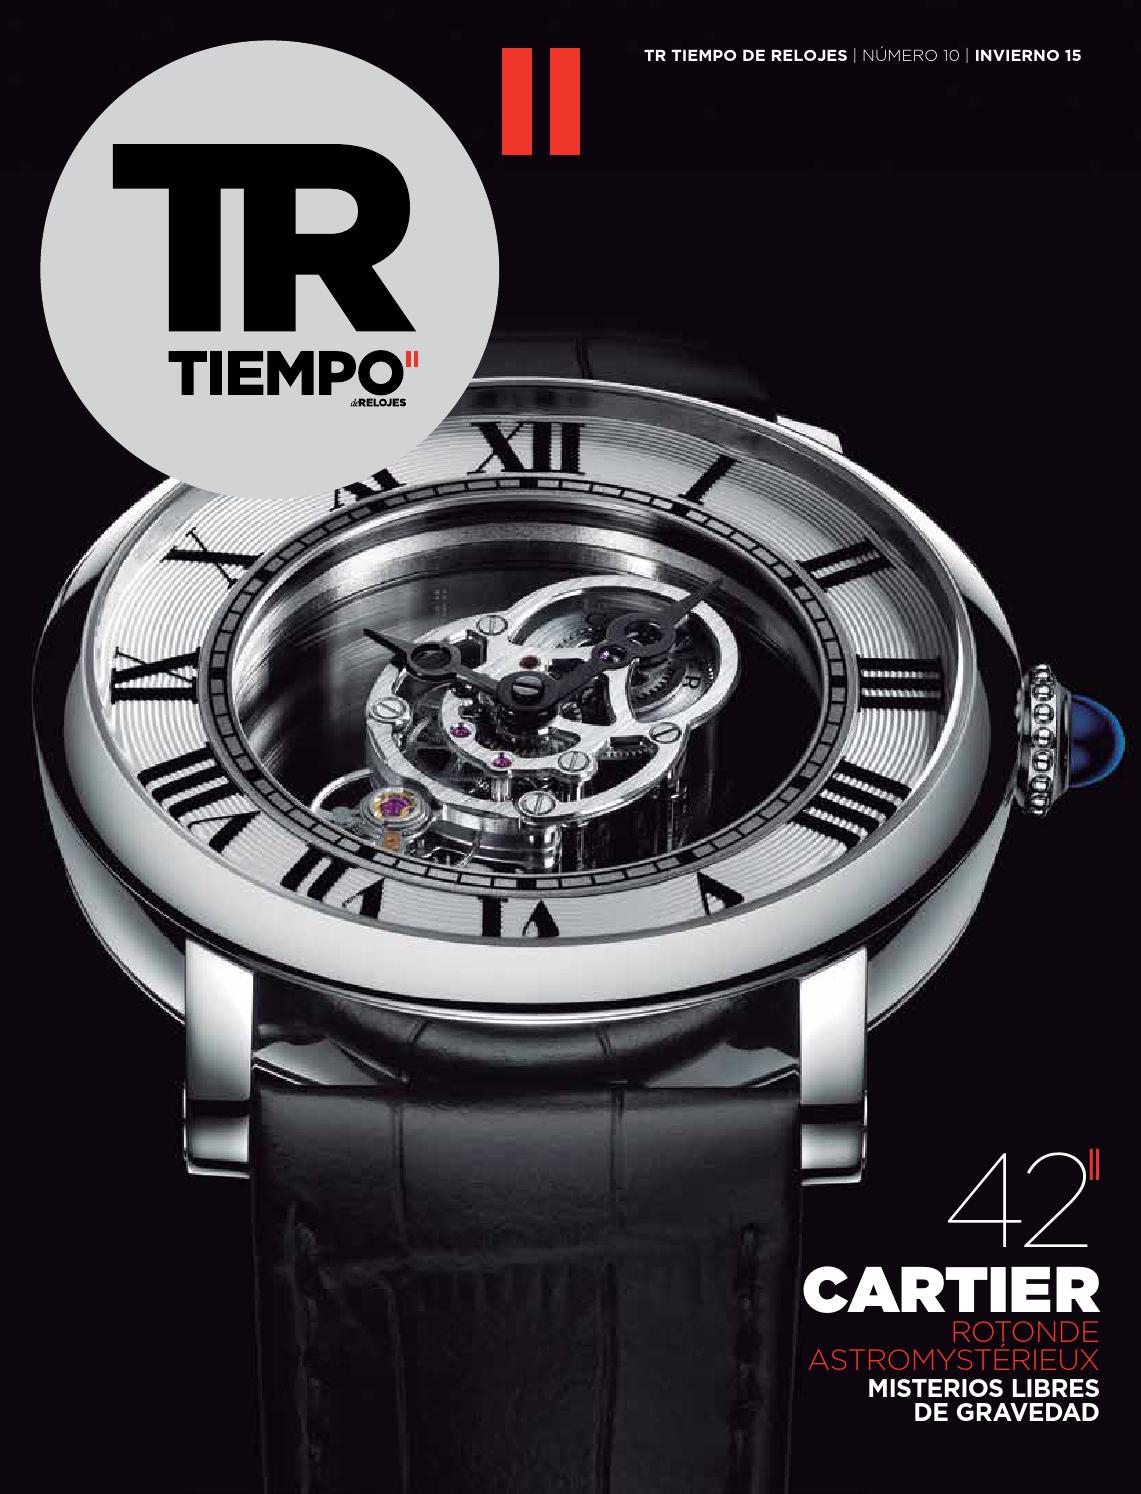 best loved 10521 3e819 Tr tiempoderelojes numero 10 by Ed-Tourbillon.Spain - issuu